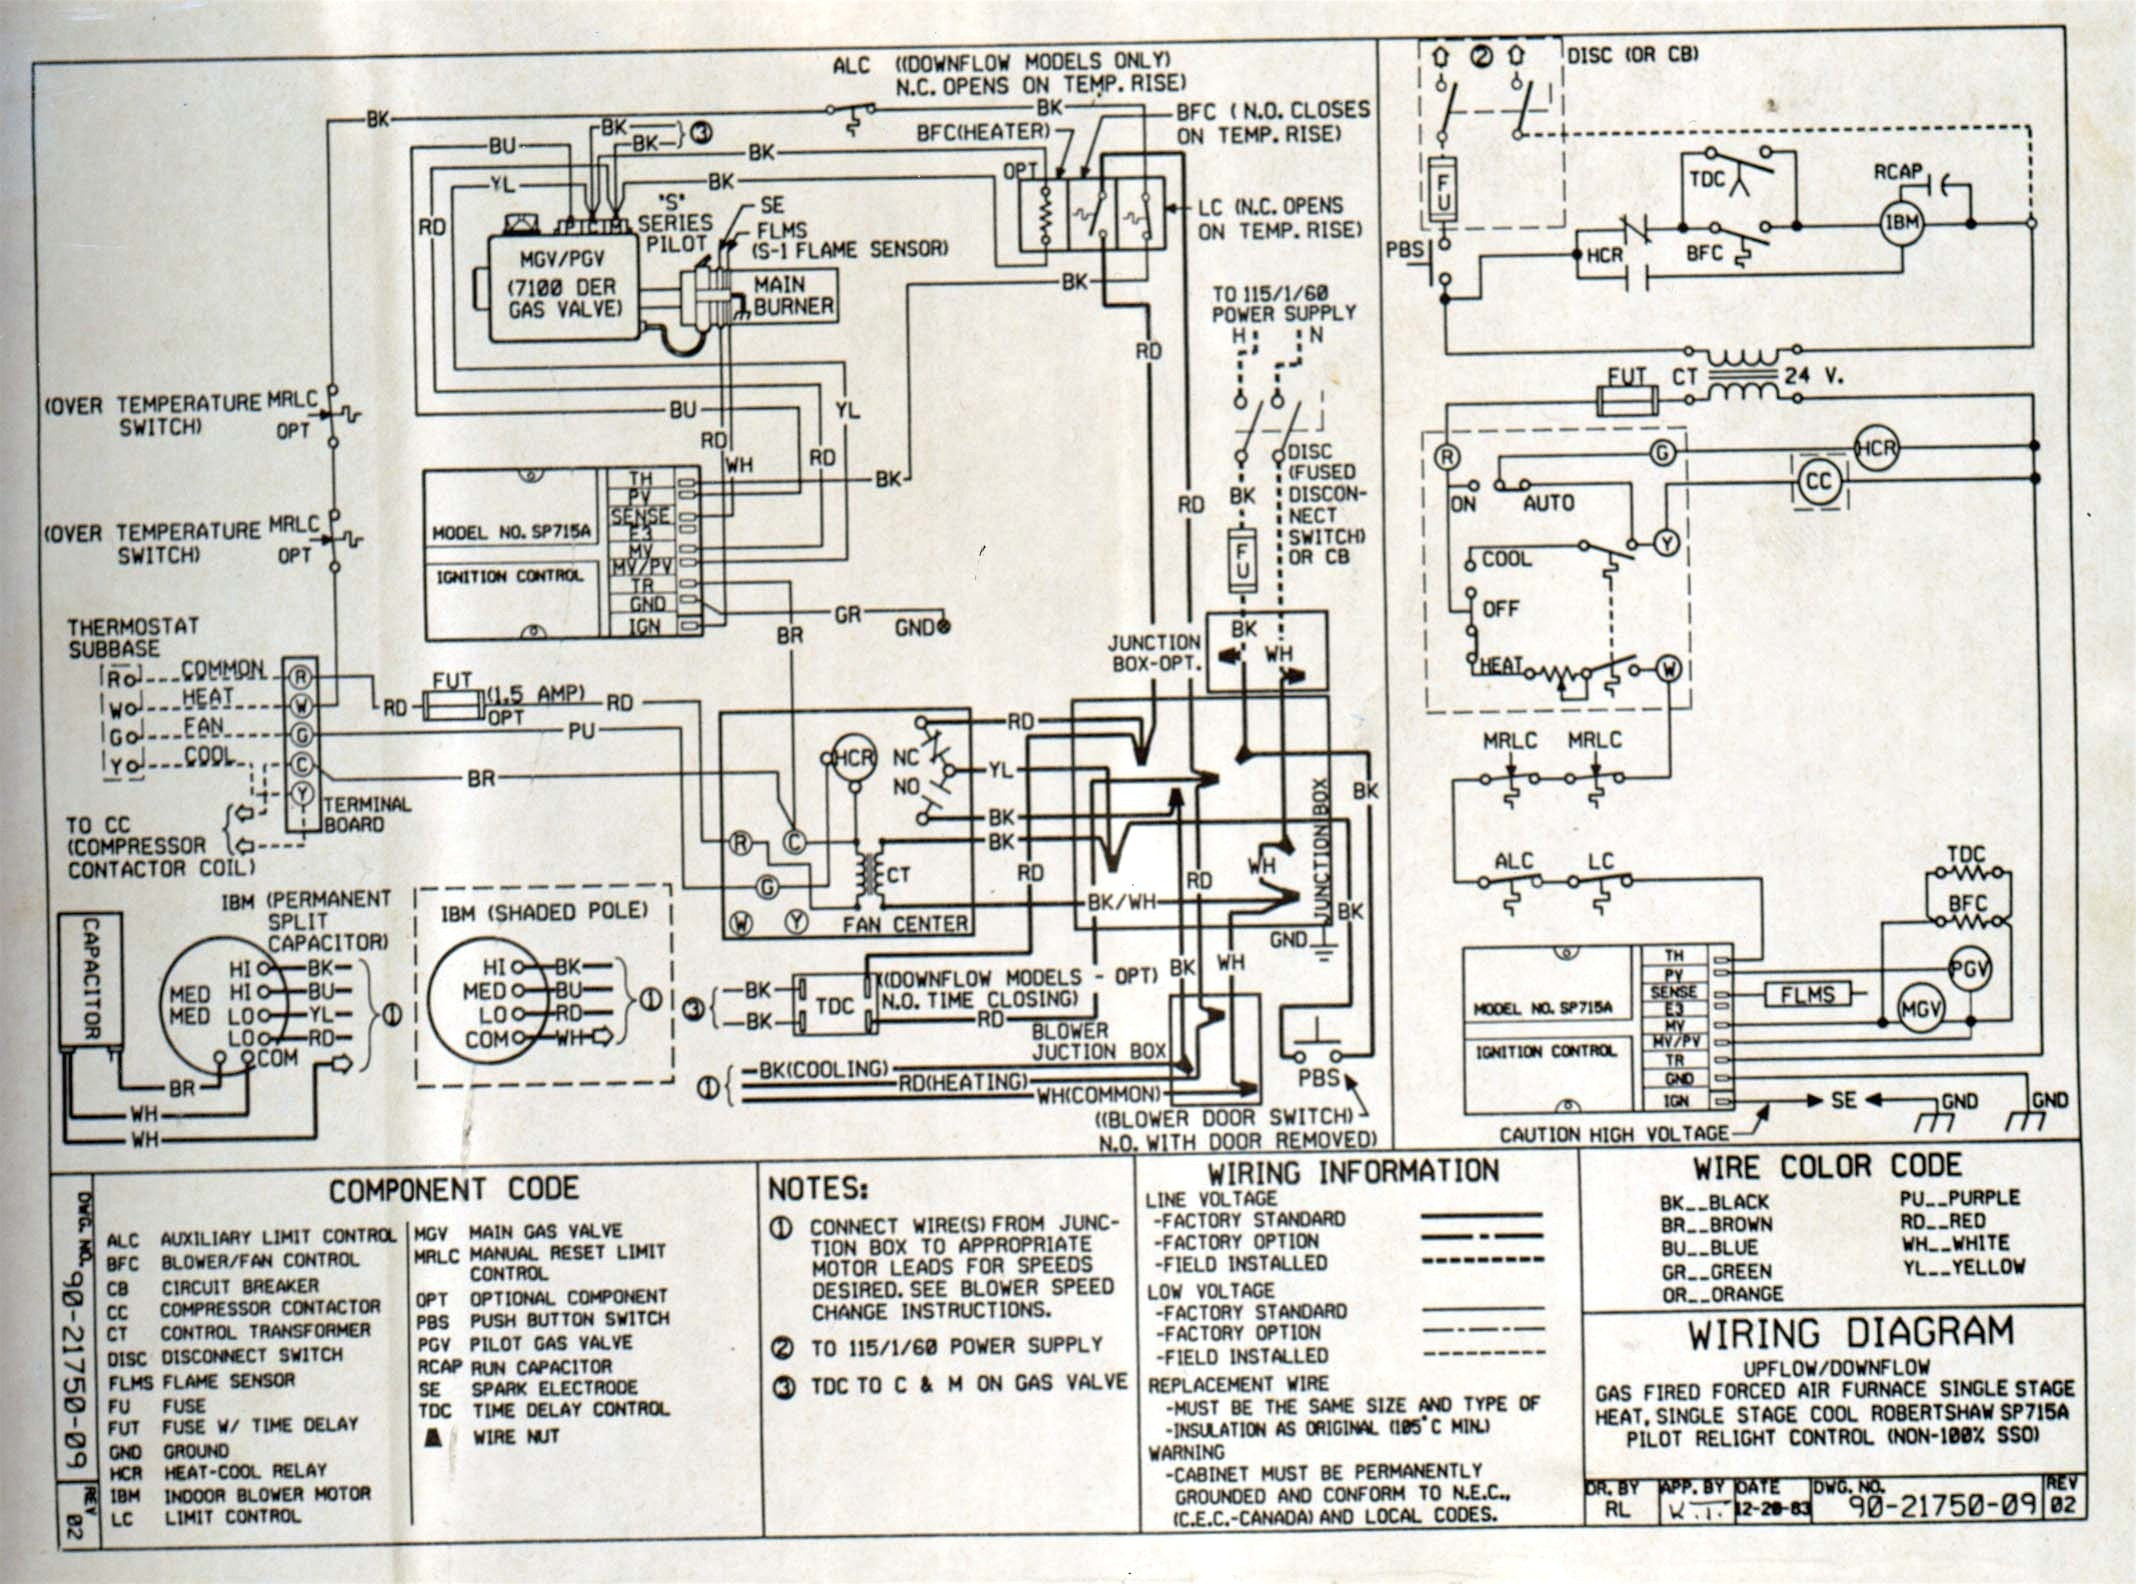 goodman air handler wiring diagram Download-Wiring Diagram Hvac thermostat New Goodman Gas Pack Wiring Diagram Data Exceptional Air Handler 2-e